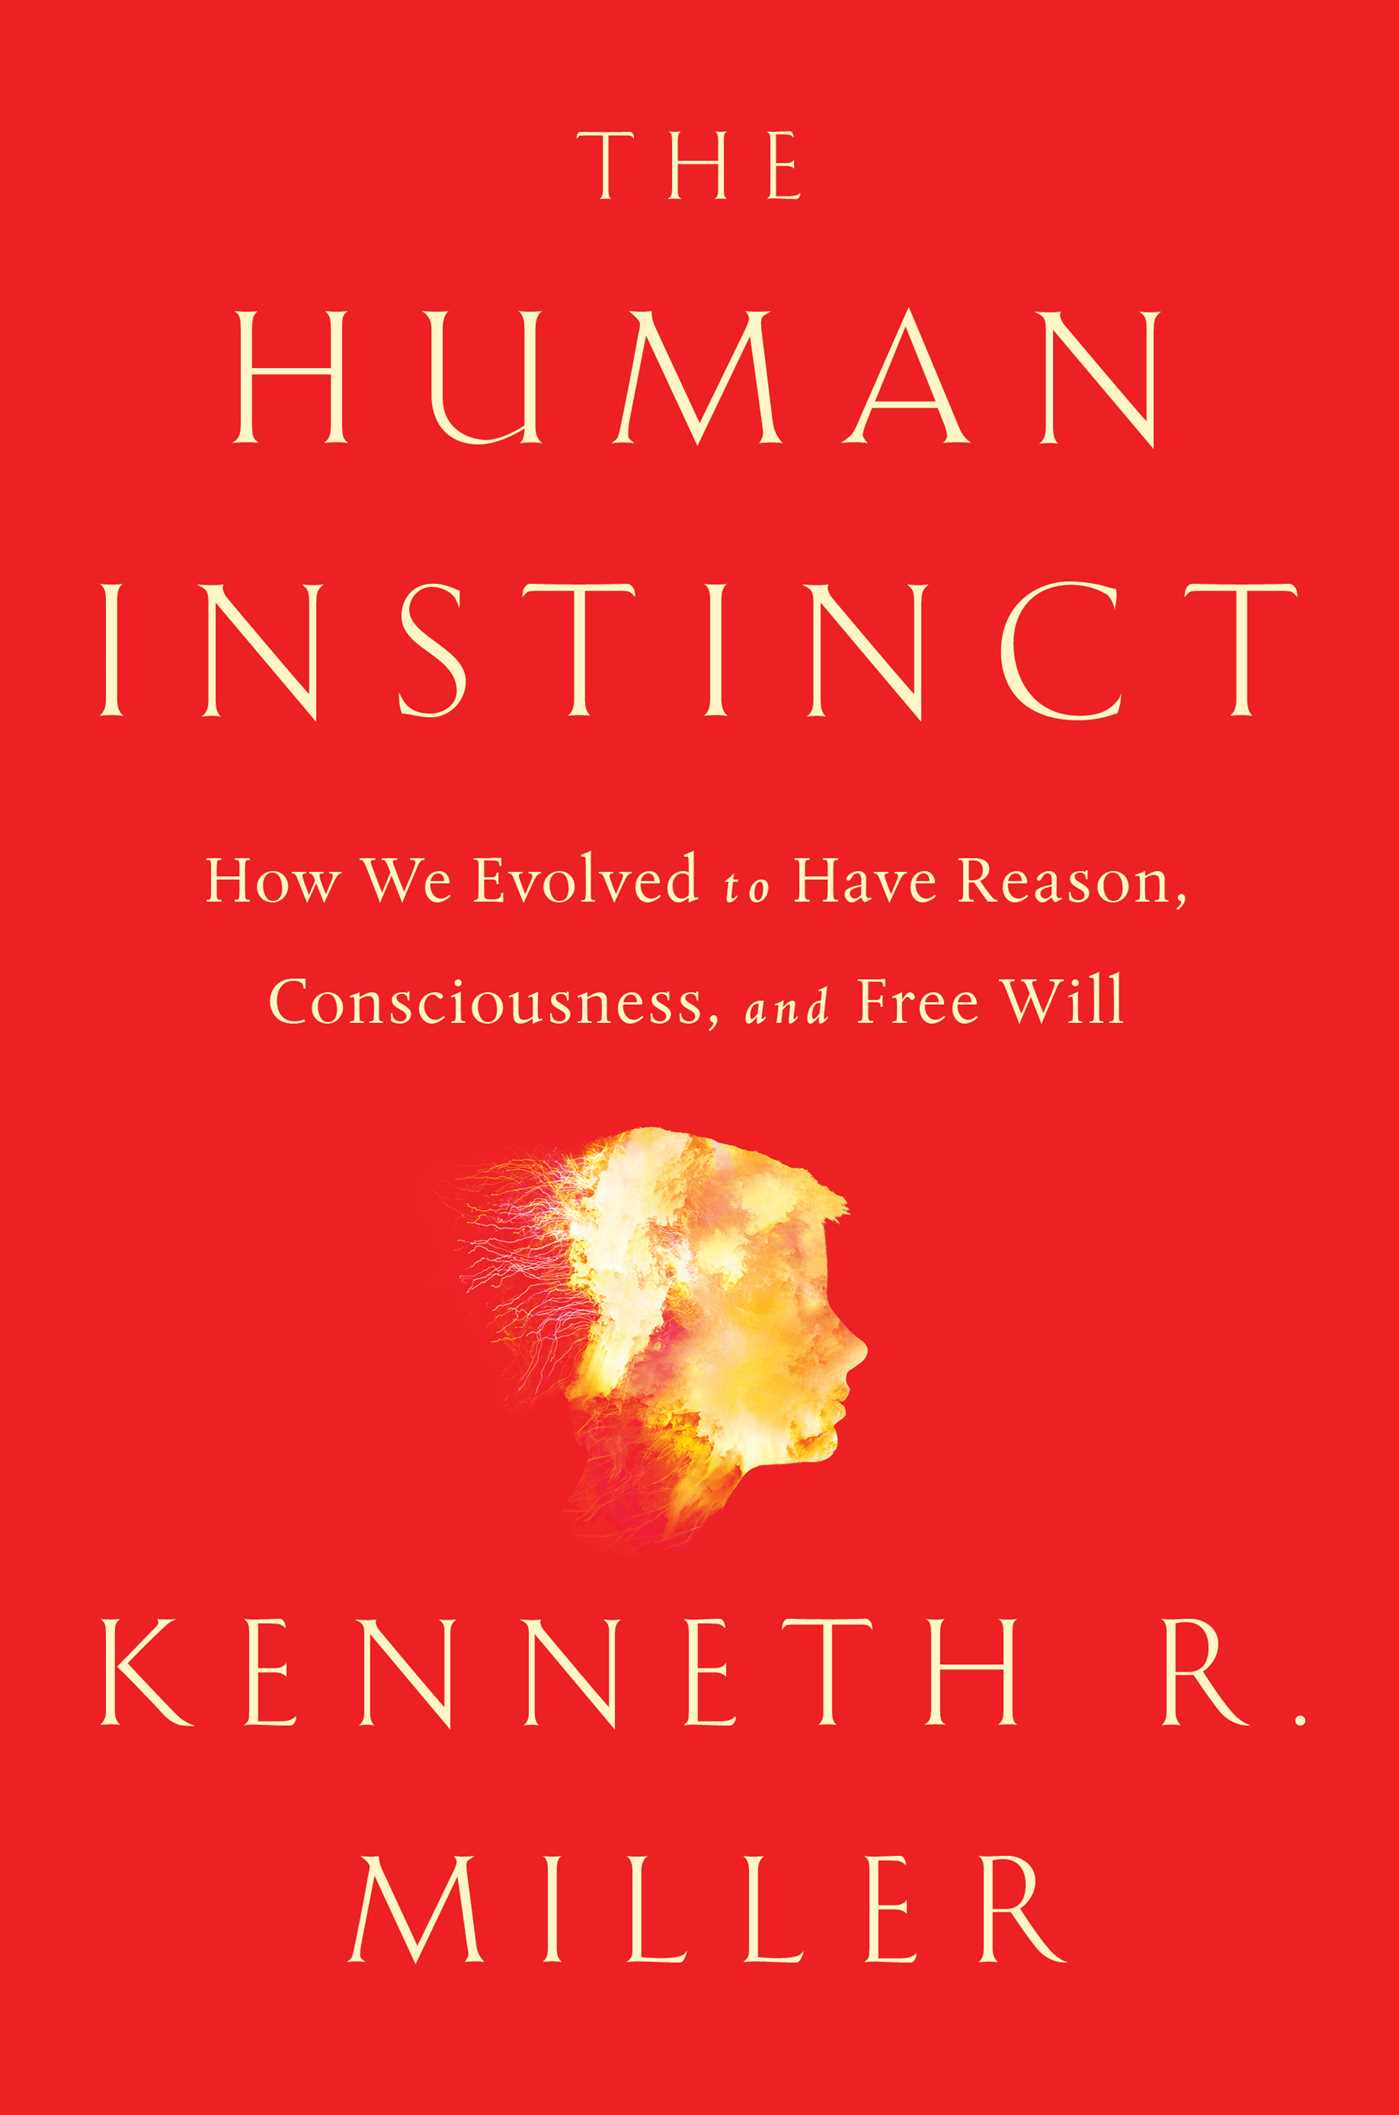 The human instinct 9781476790268 hr